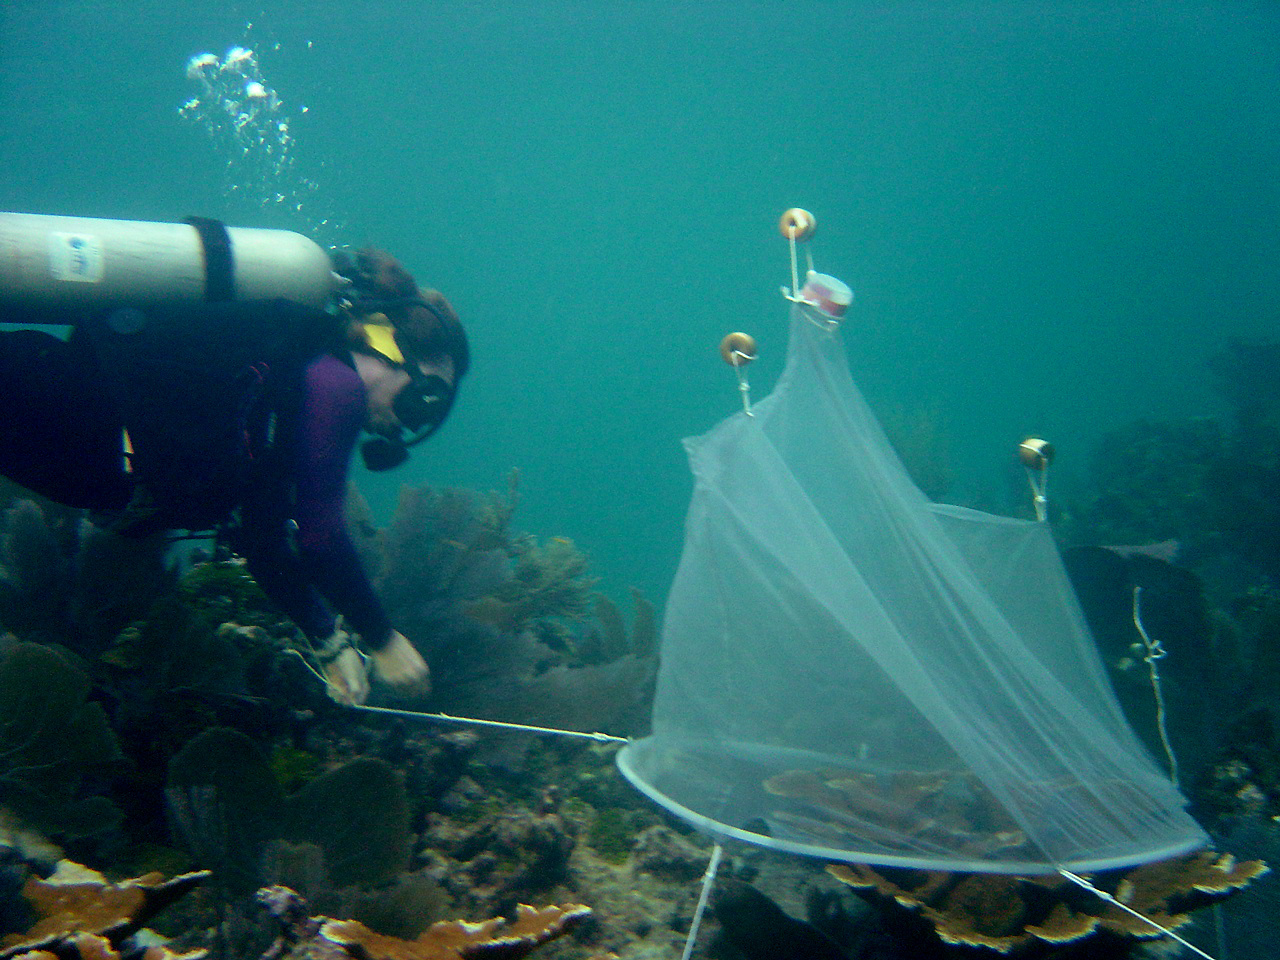 Spawning collection efforts being conducted by divers.